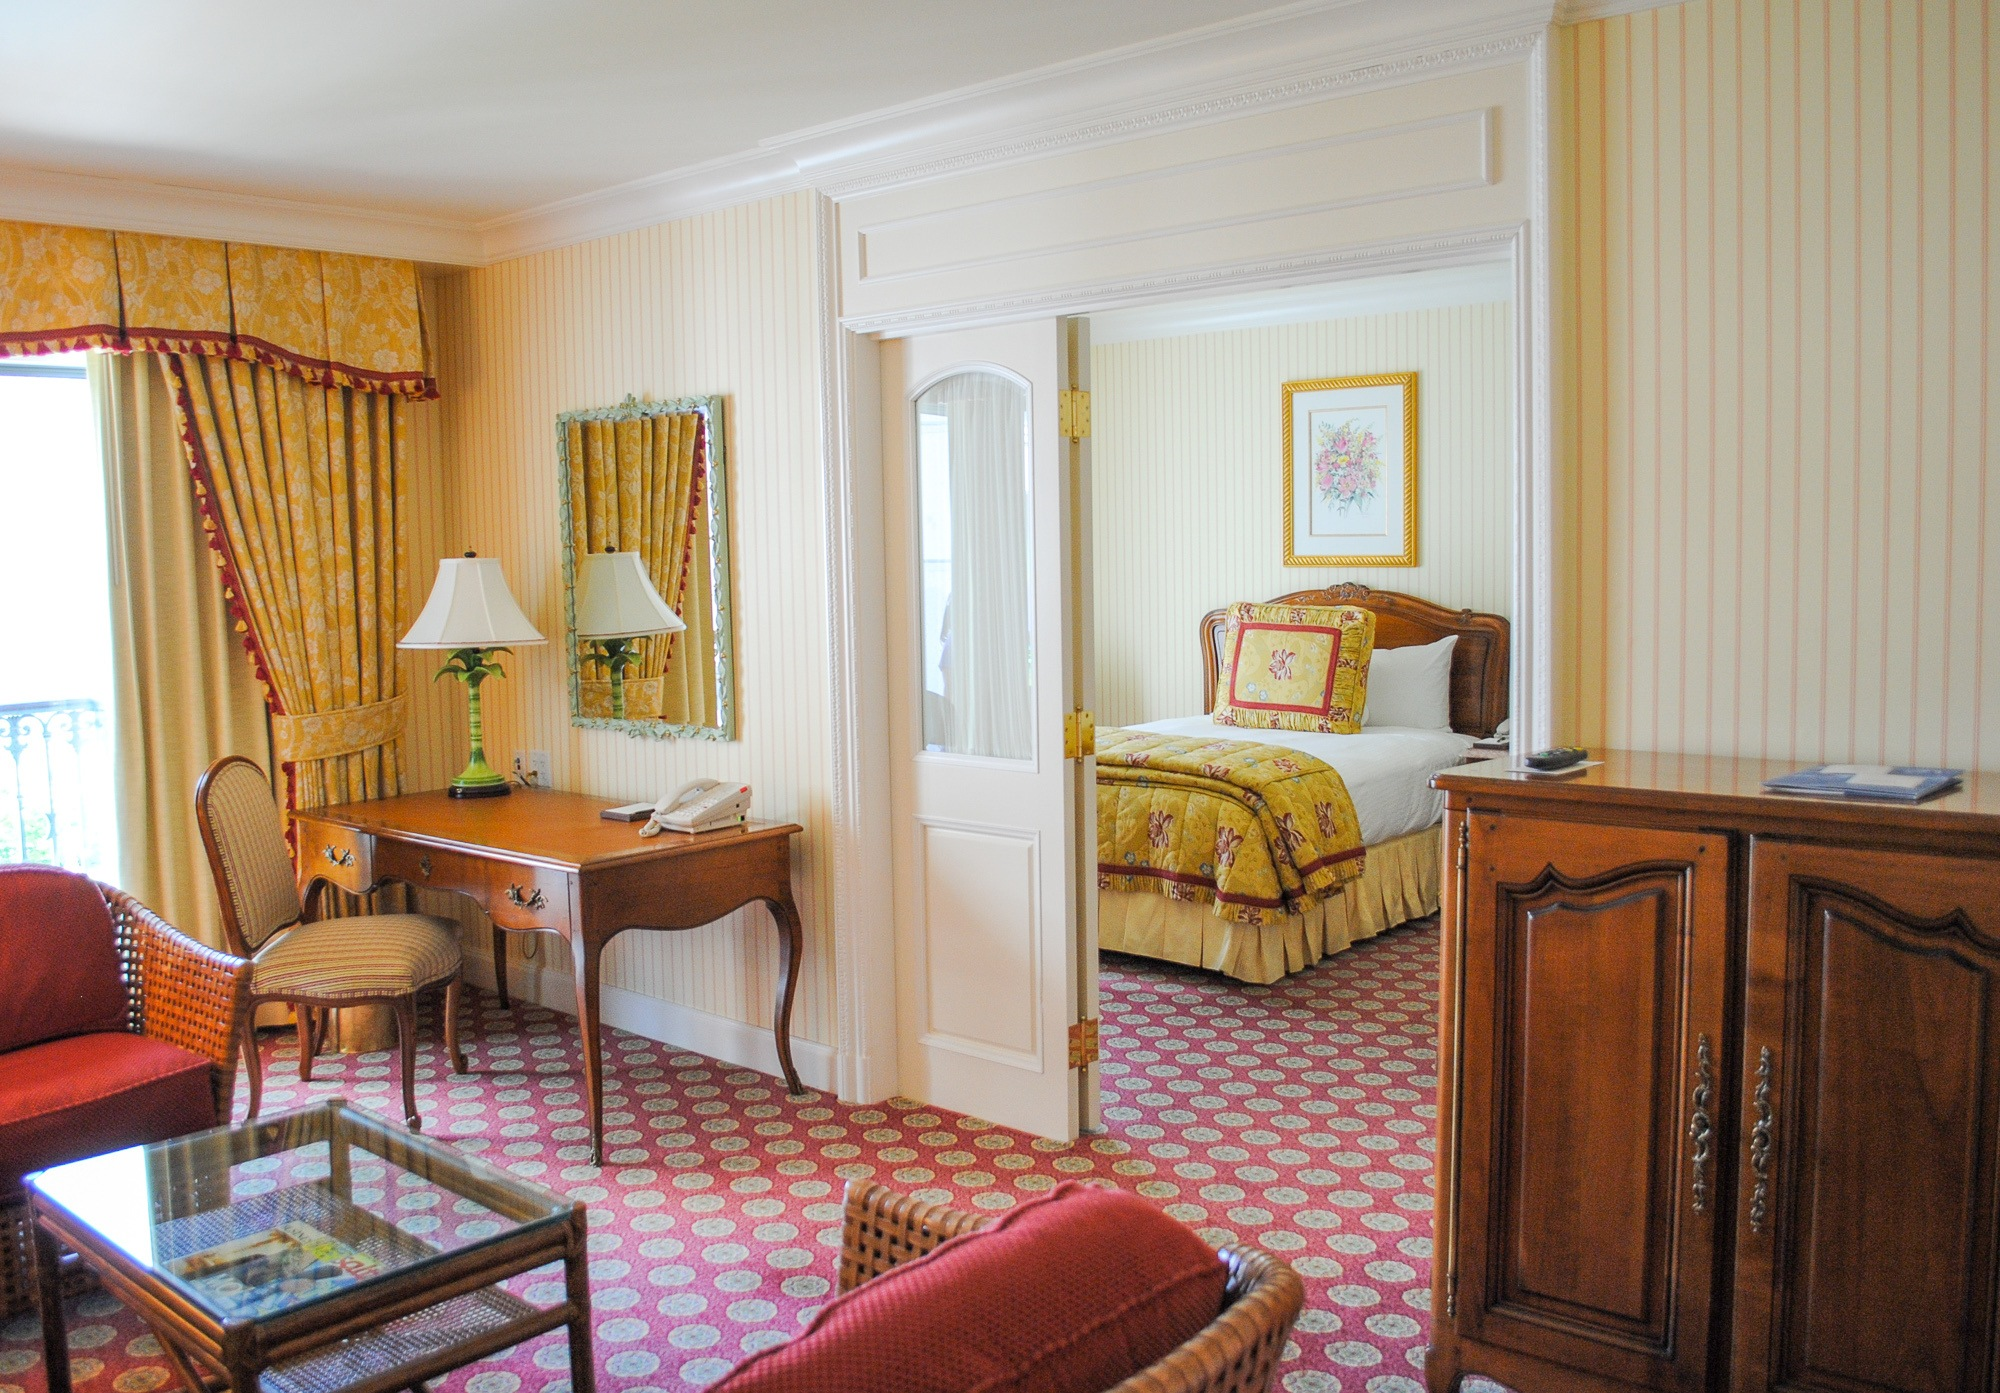 Luxurious accommodations at the Grand Hotel in Salt Lake City